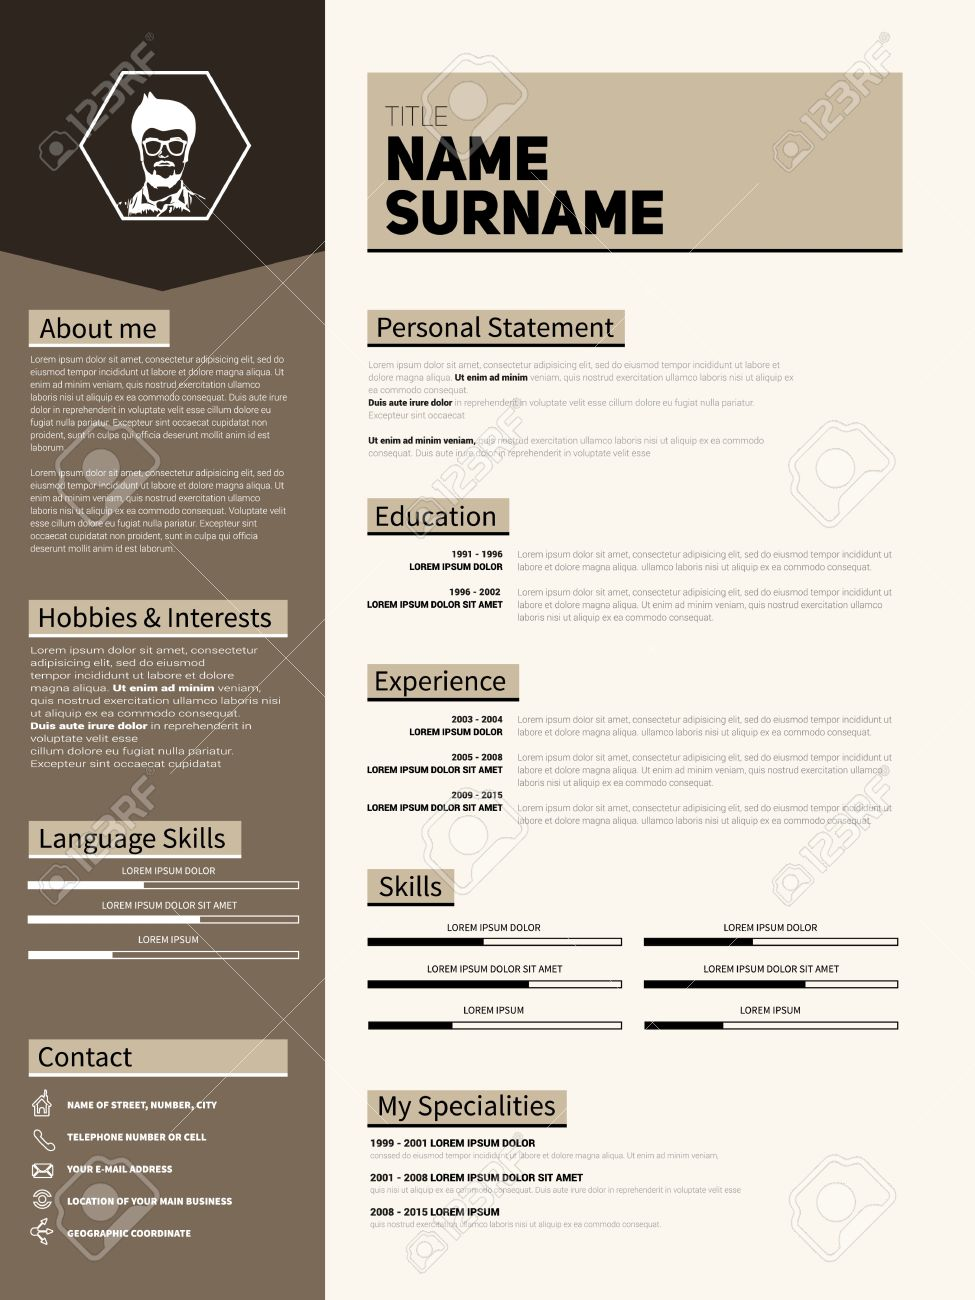 minimalist cv resume template with simple design royalty free